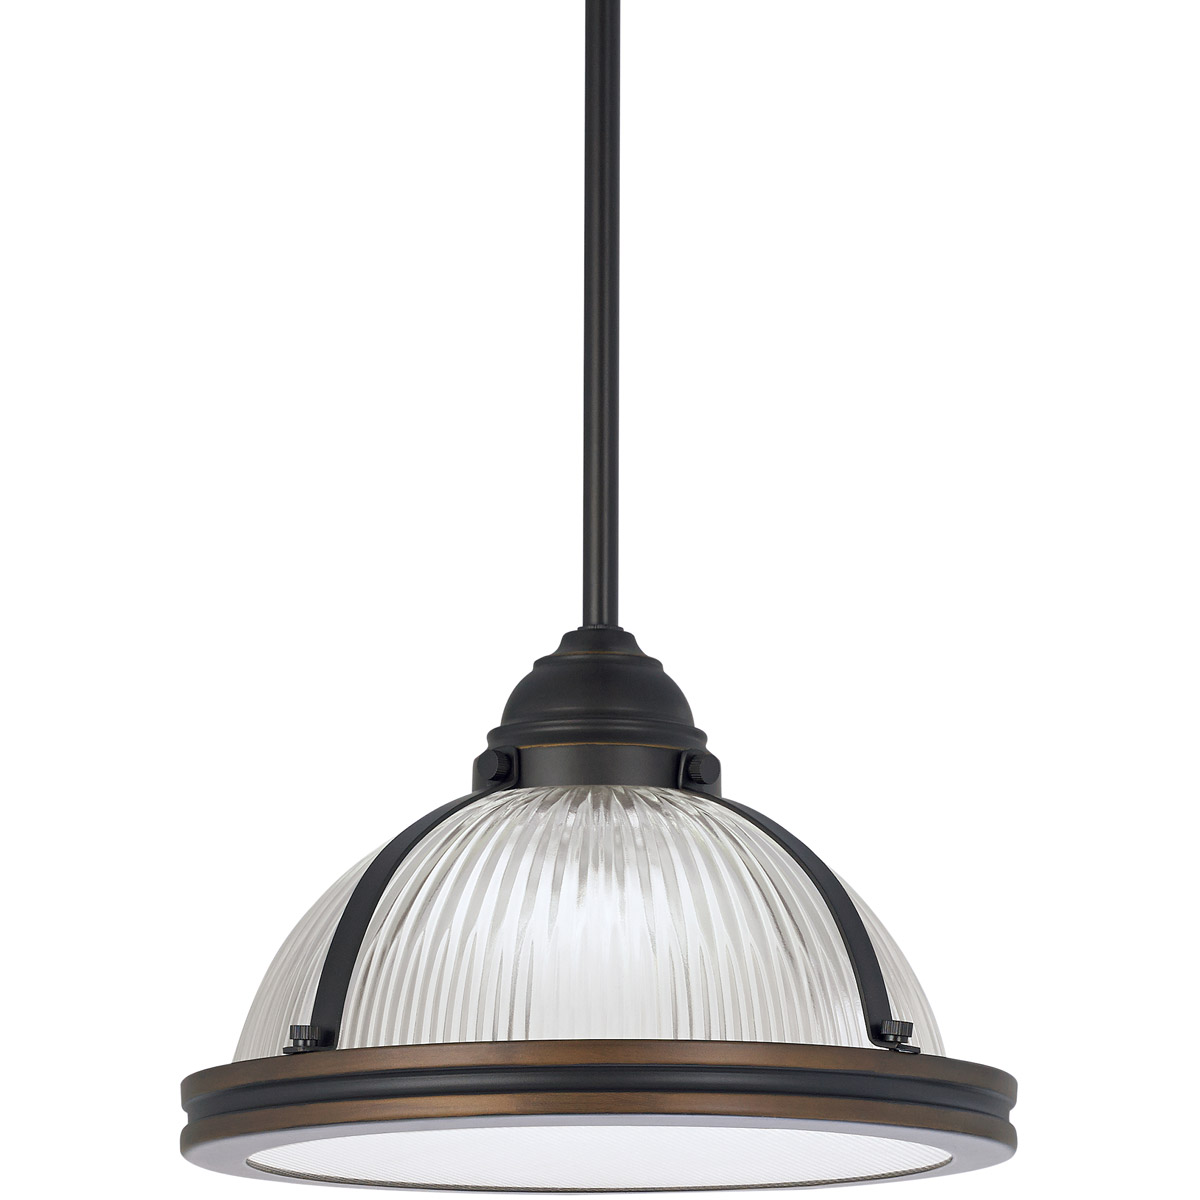 Sea Gull 65060-715 Pratt Street Prismatic 1 Light 11 inch Autumn Bronze Pendant Ceiling Light photo